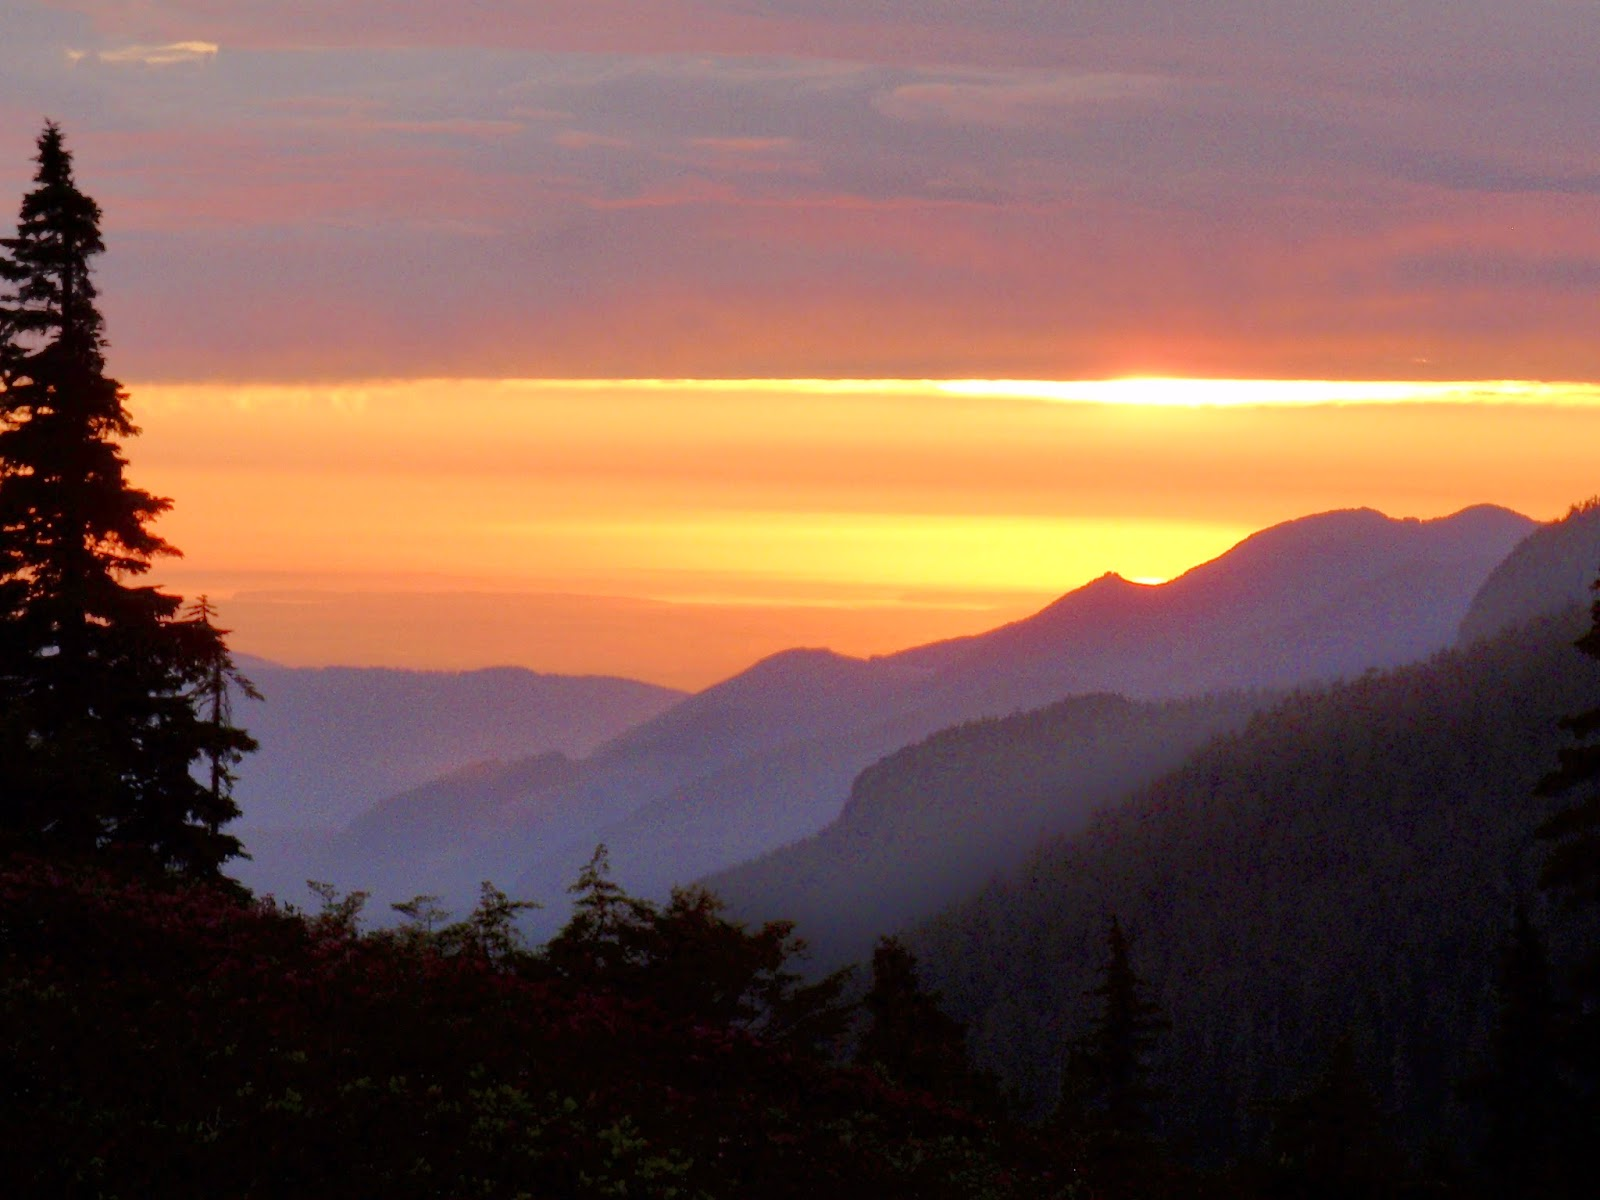 Sunsetting from Mt Baker National Recreation Area